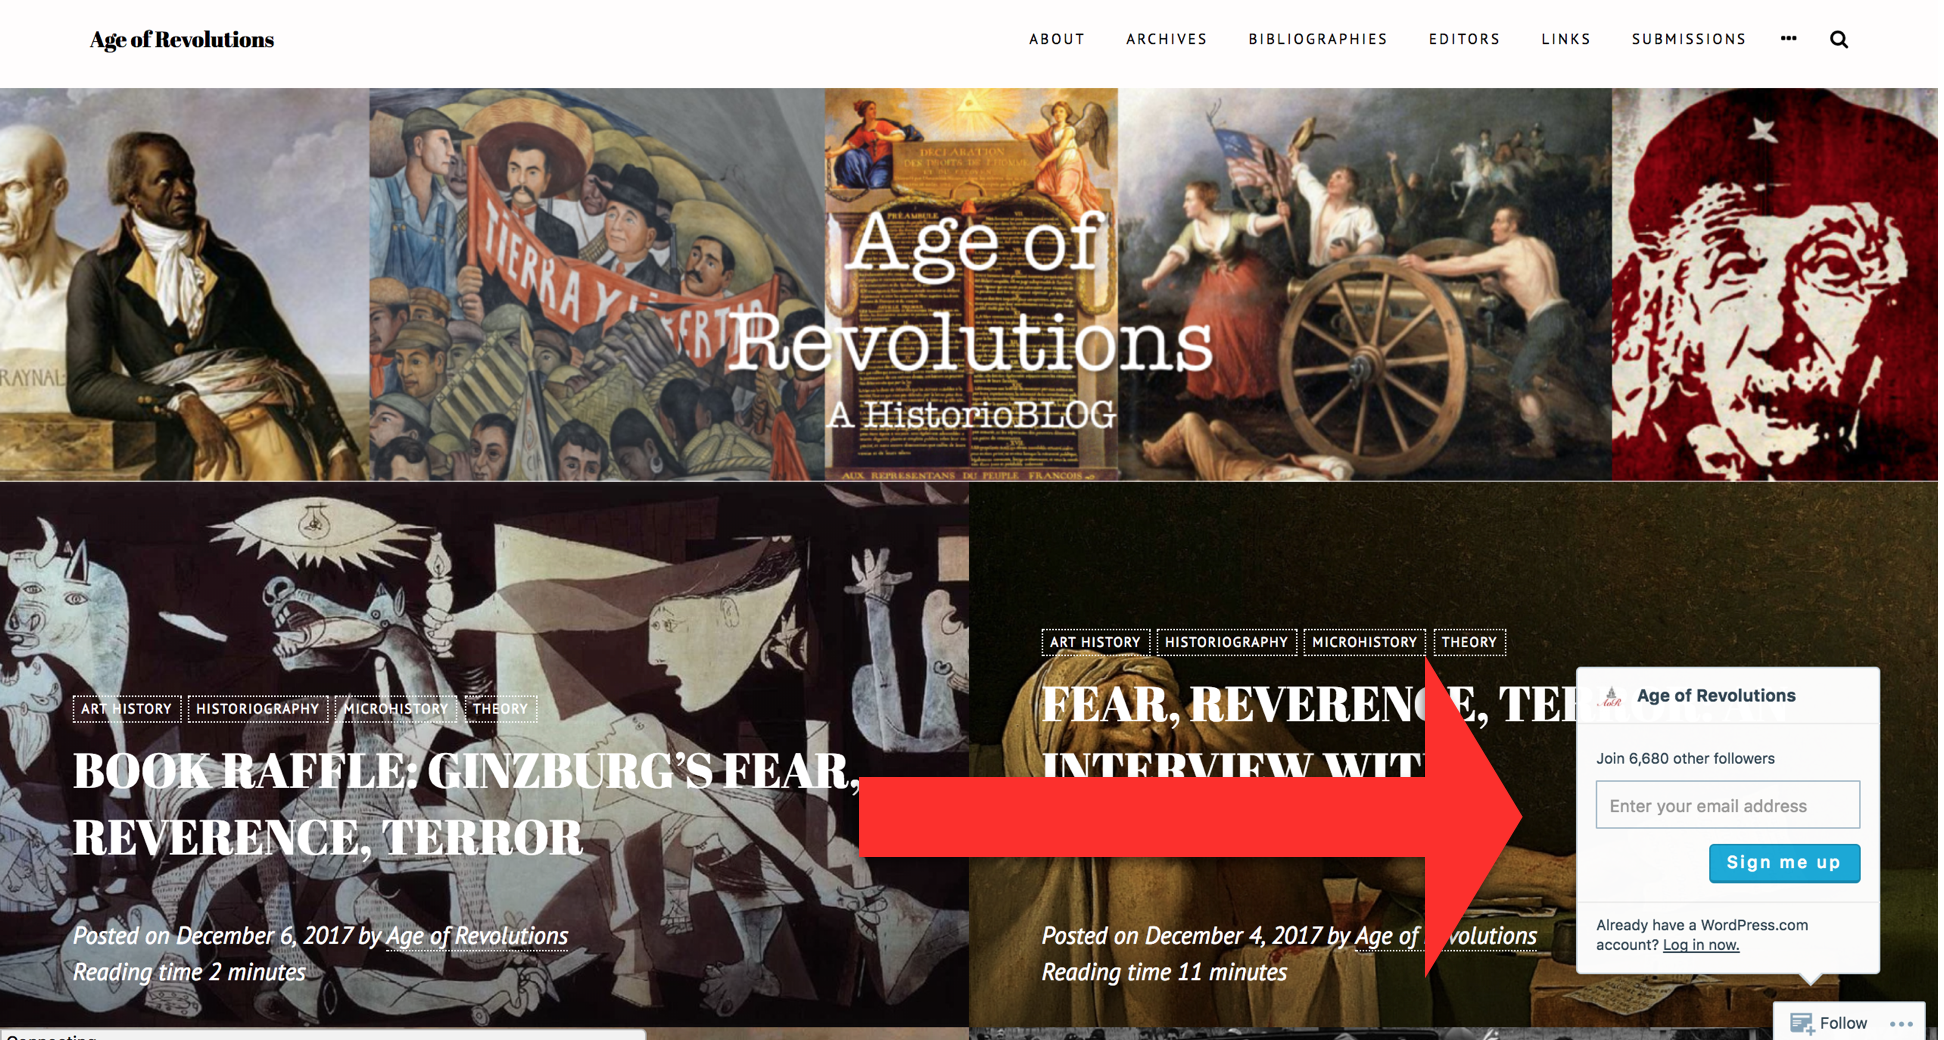 How to subscribe to Age of Revolutions.